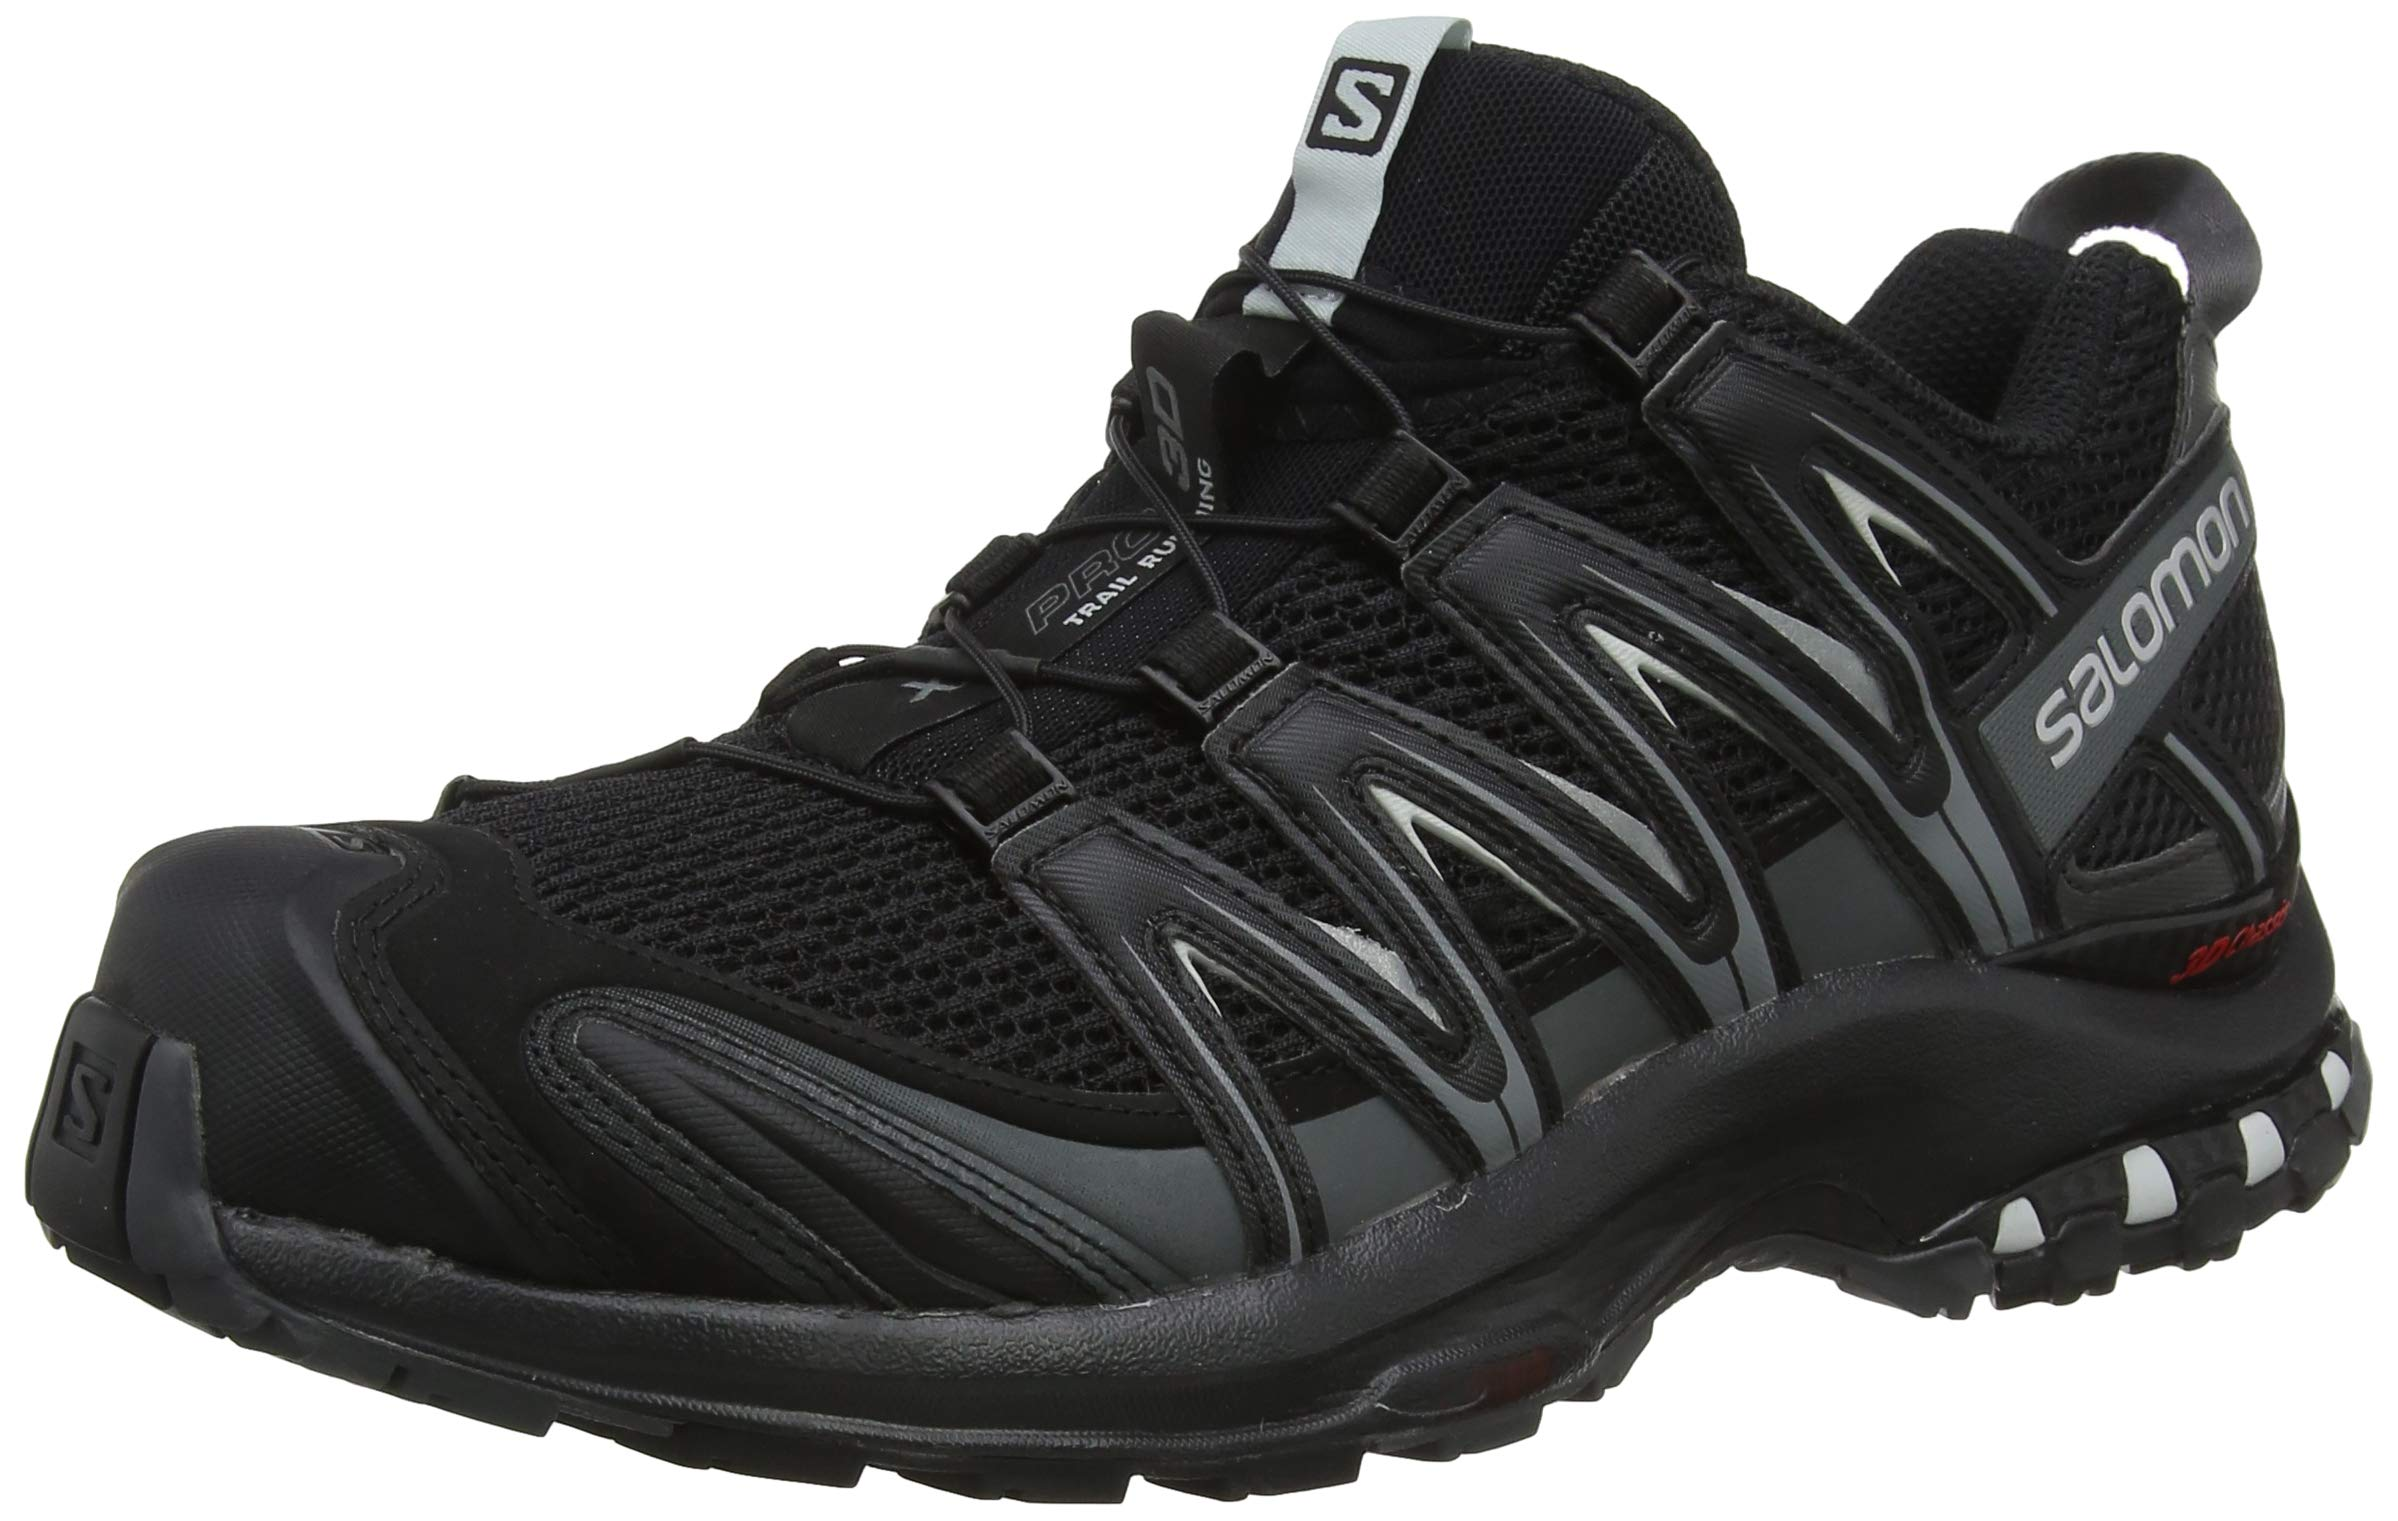 Salomon Men's XA PRO 3D Trail Running Shoe, Black, 12.5 M US